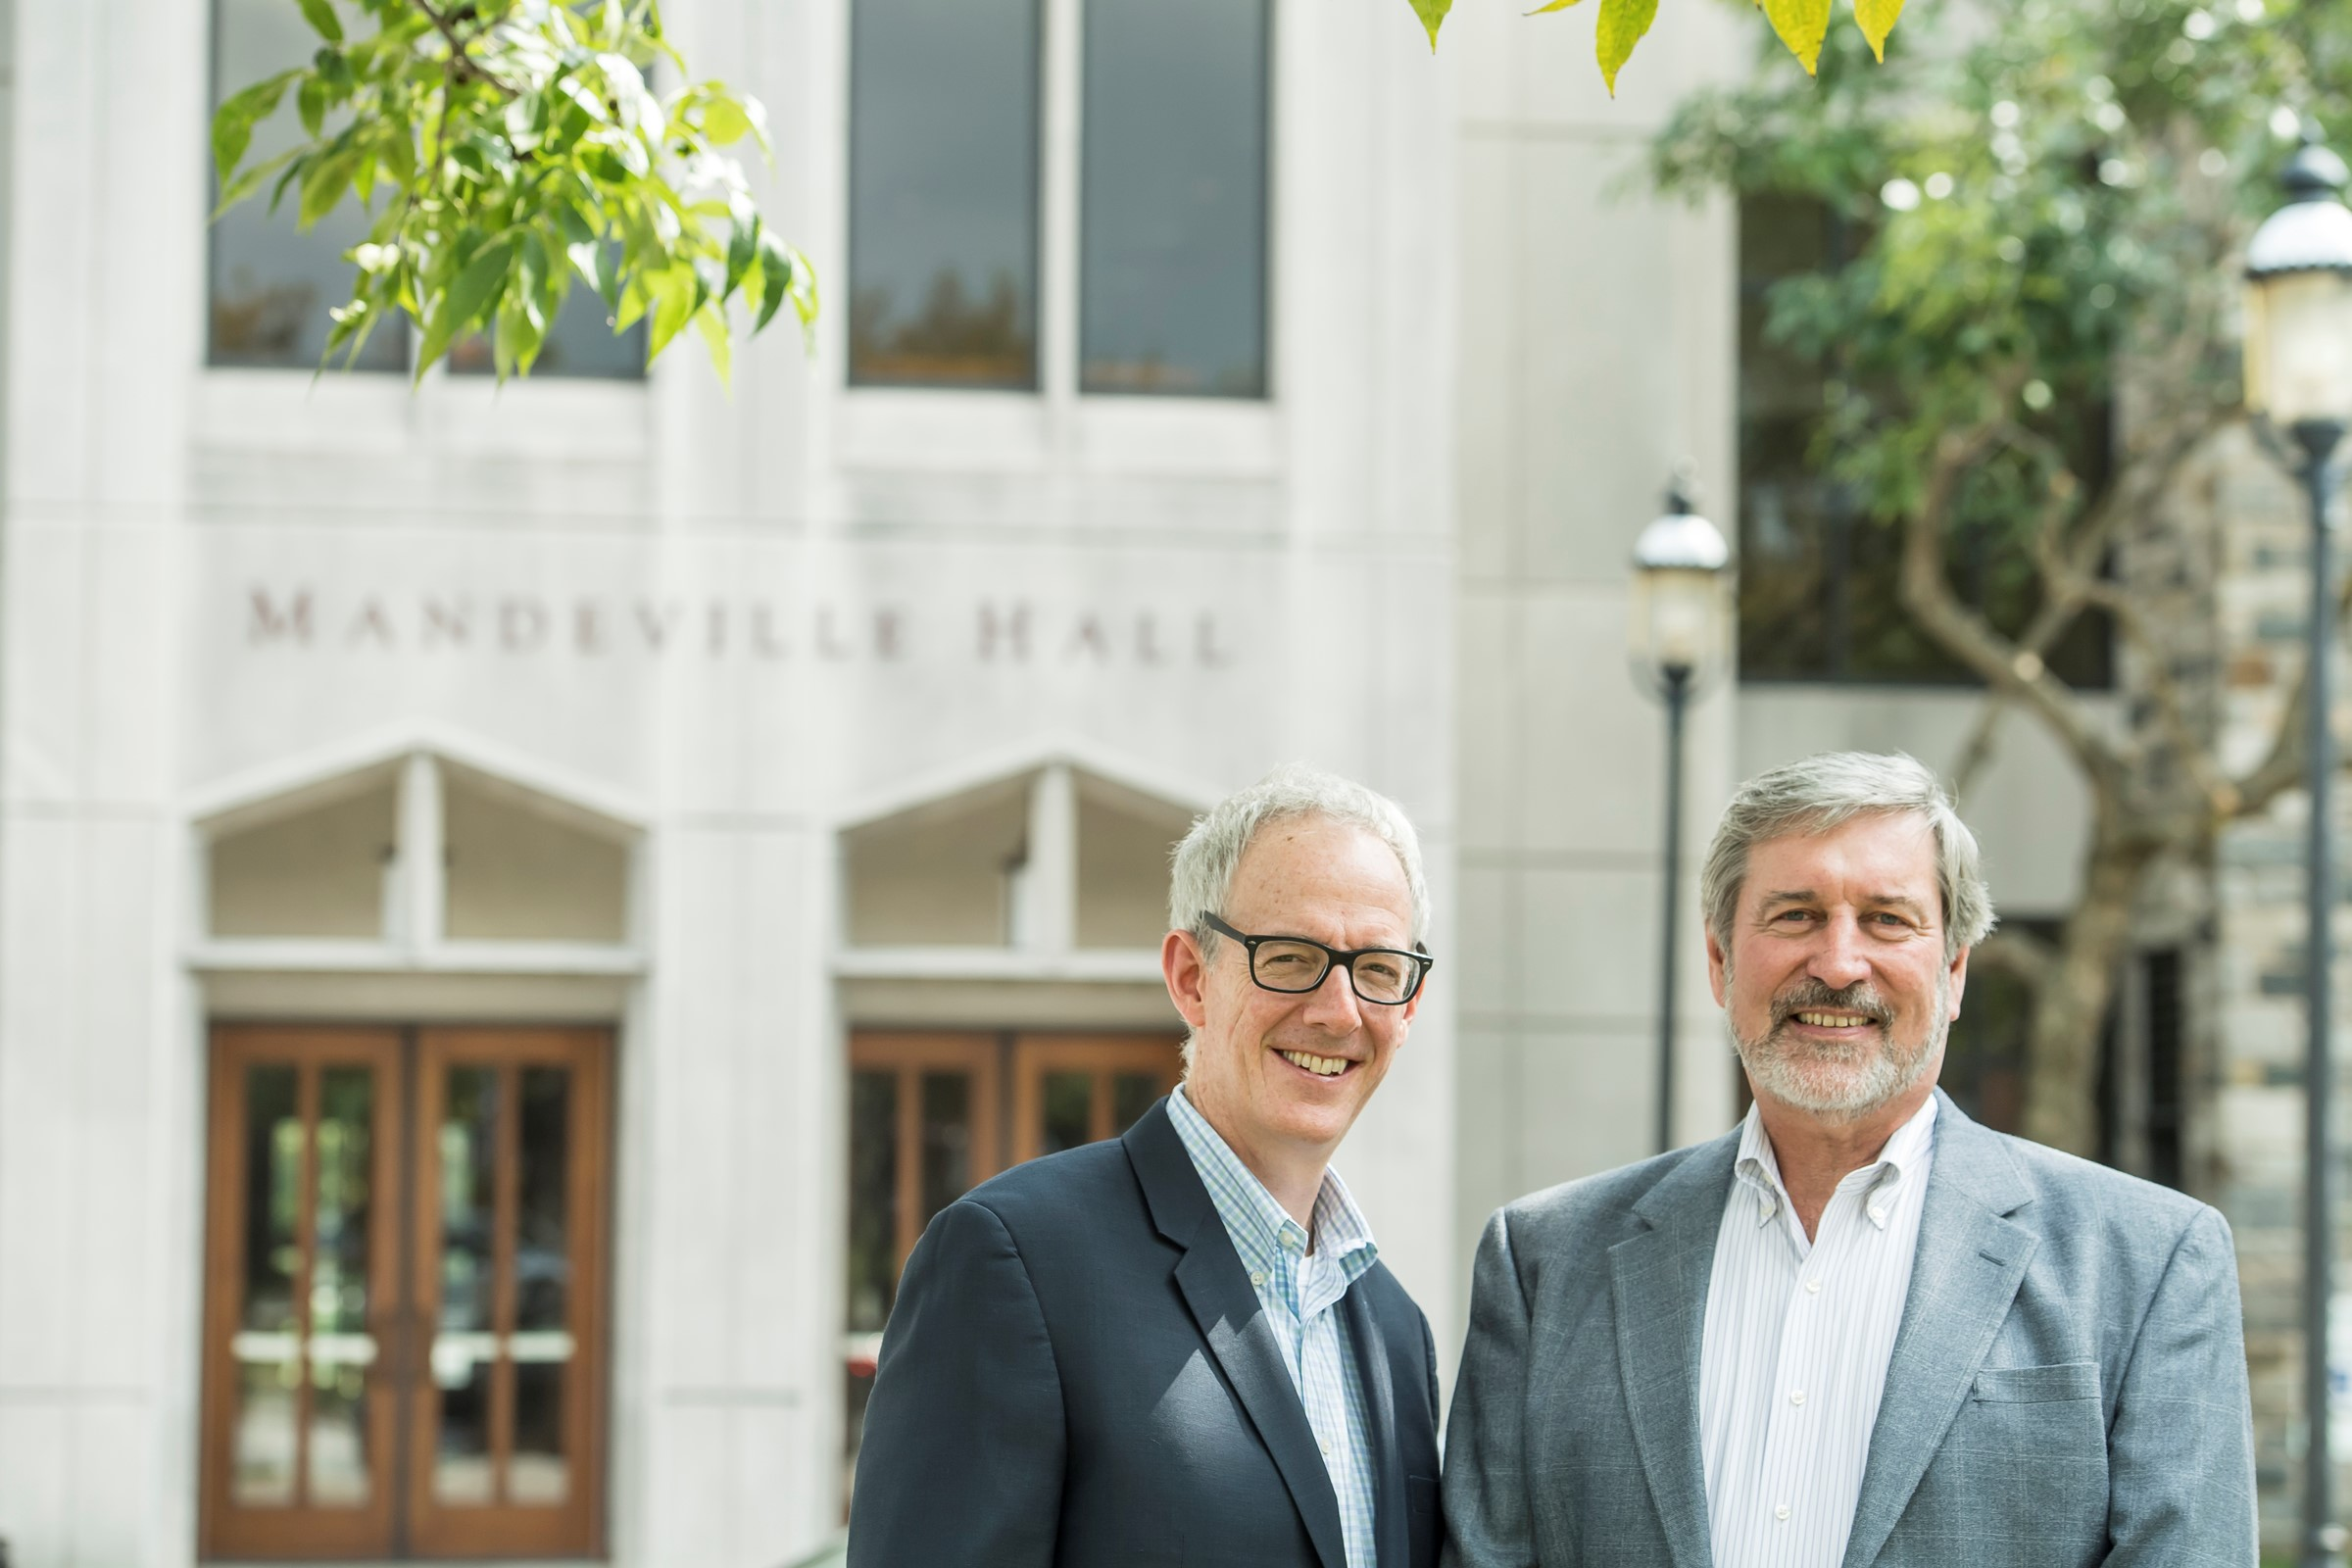 David Steingard, Ph.D., (left) and John McCall, Ph.D. in front of the Haub School of Business' Mandeville Hall (Photo by Saint Joseph's University)